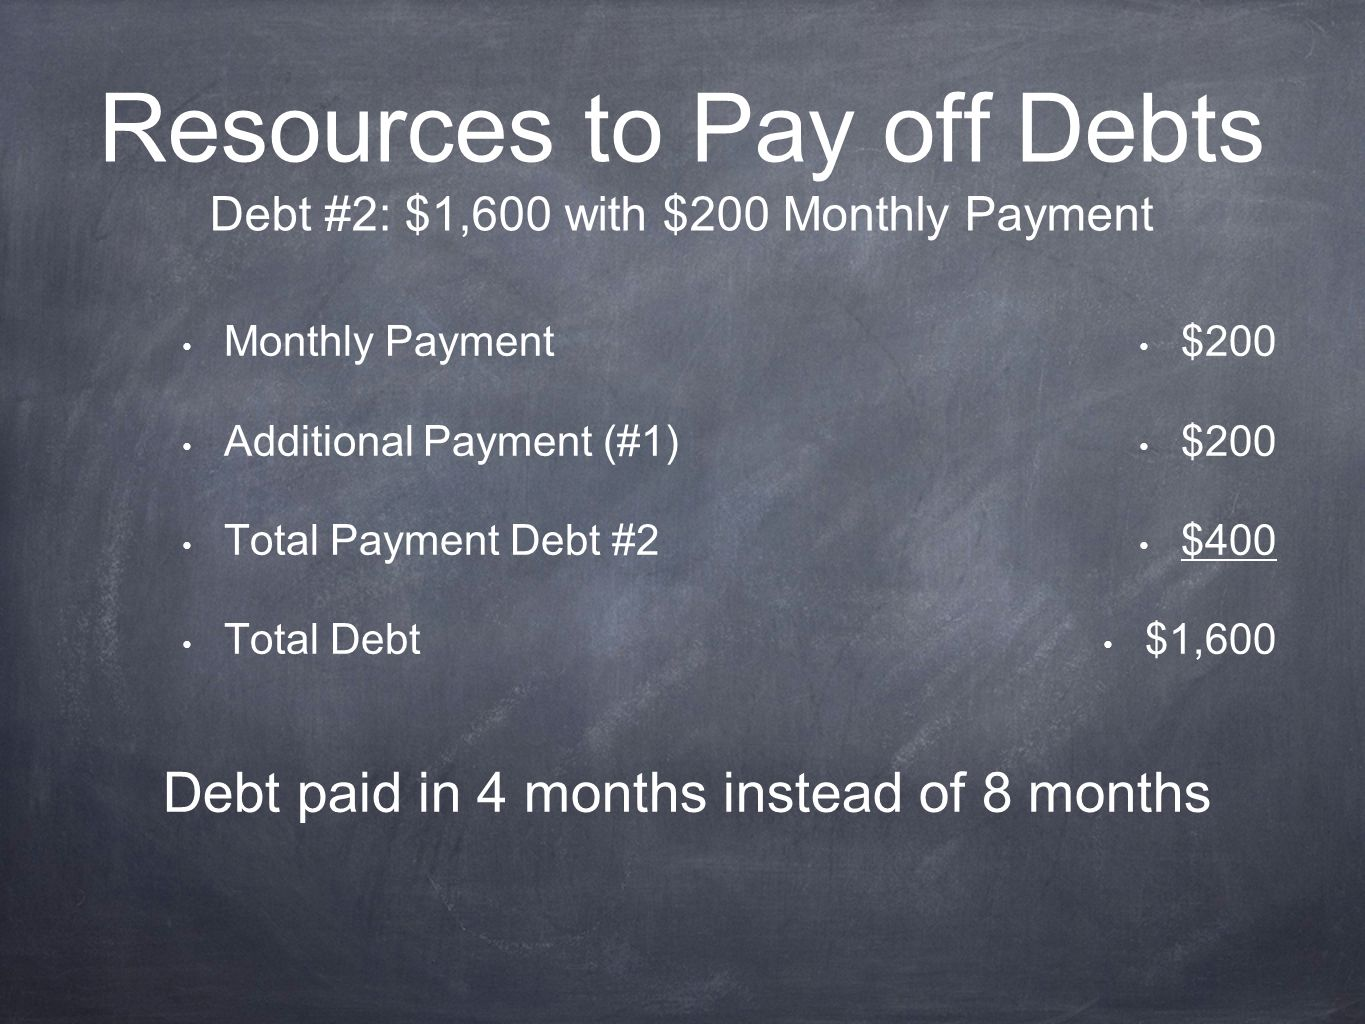 Resources to Pay off Debts Debt #2: $1,600 with $200 Monthly Payment Monthly Payment Additional Payment (#1) Total Payment Debt #2 Total Debt $200 $400 $1,600 Debt paid in 4 months instead of 8 months